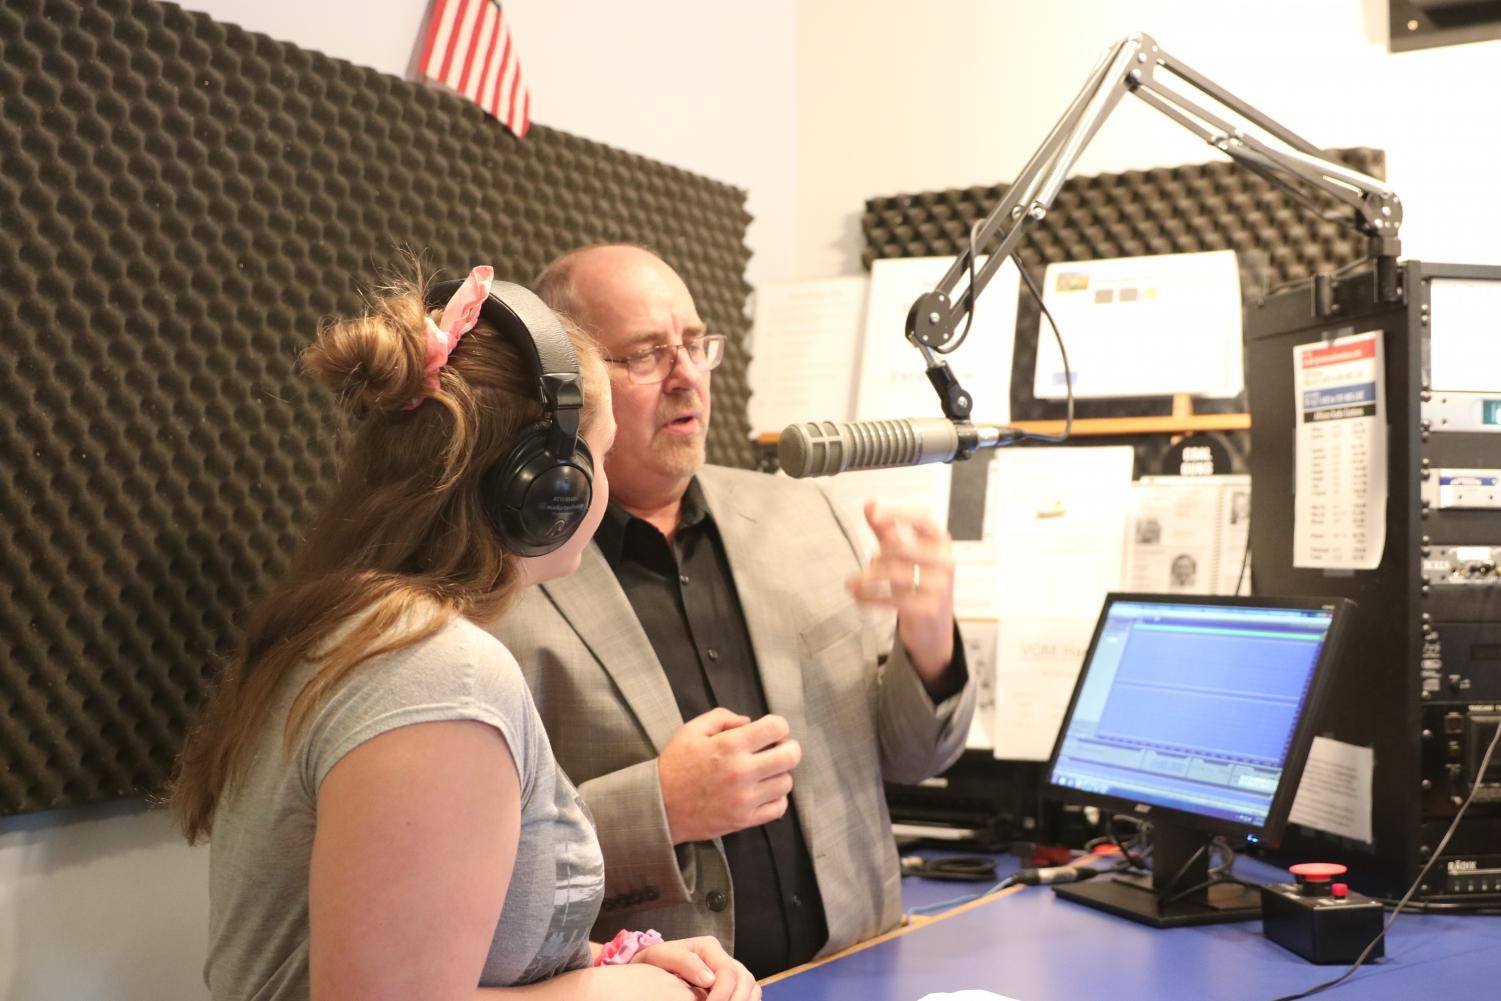 2.%09Voices+of+Montana+radio+host+Tom+Schultz+demonstrates+proper+microphone+use+to+student+Desiree+Swanson+in+the+Northern+News+Network+station.